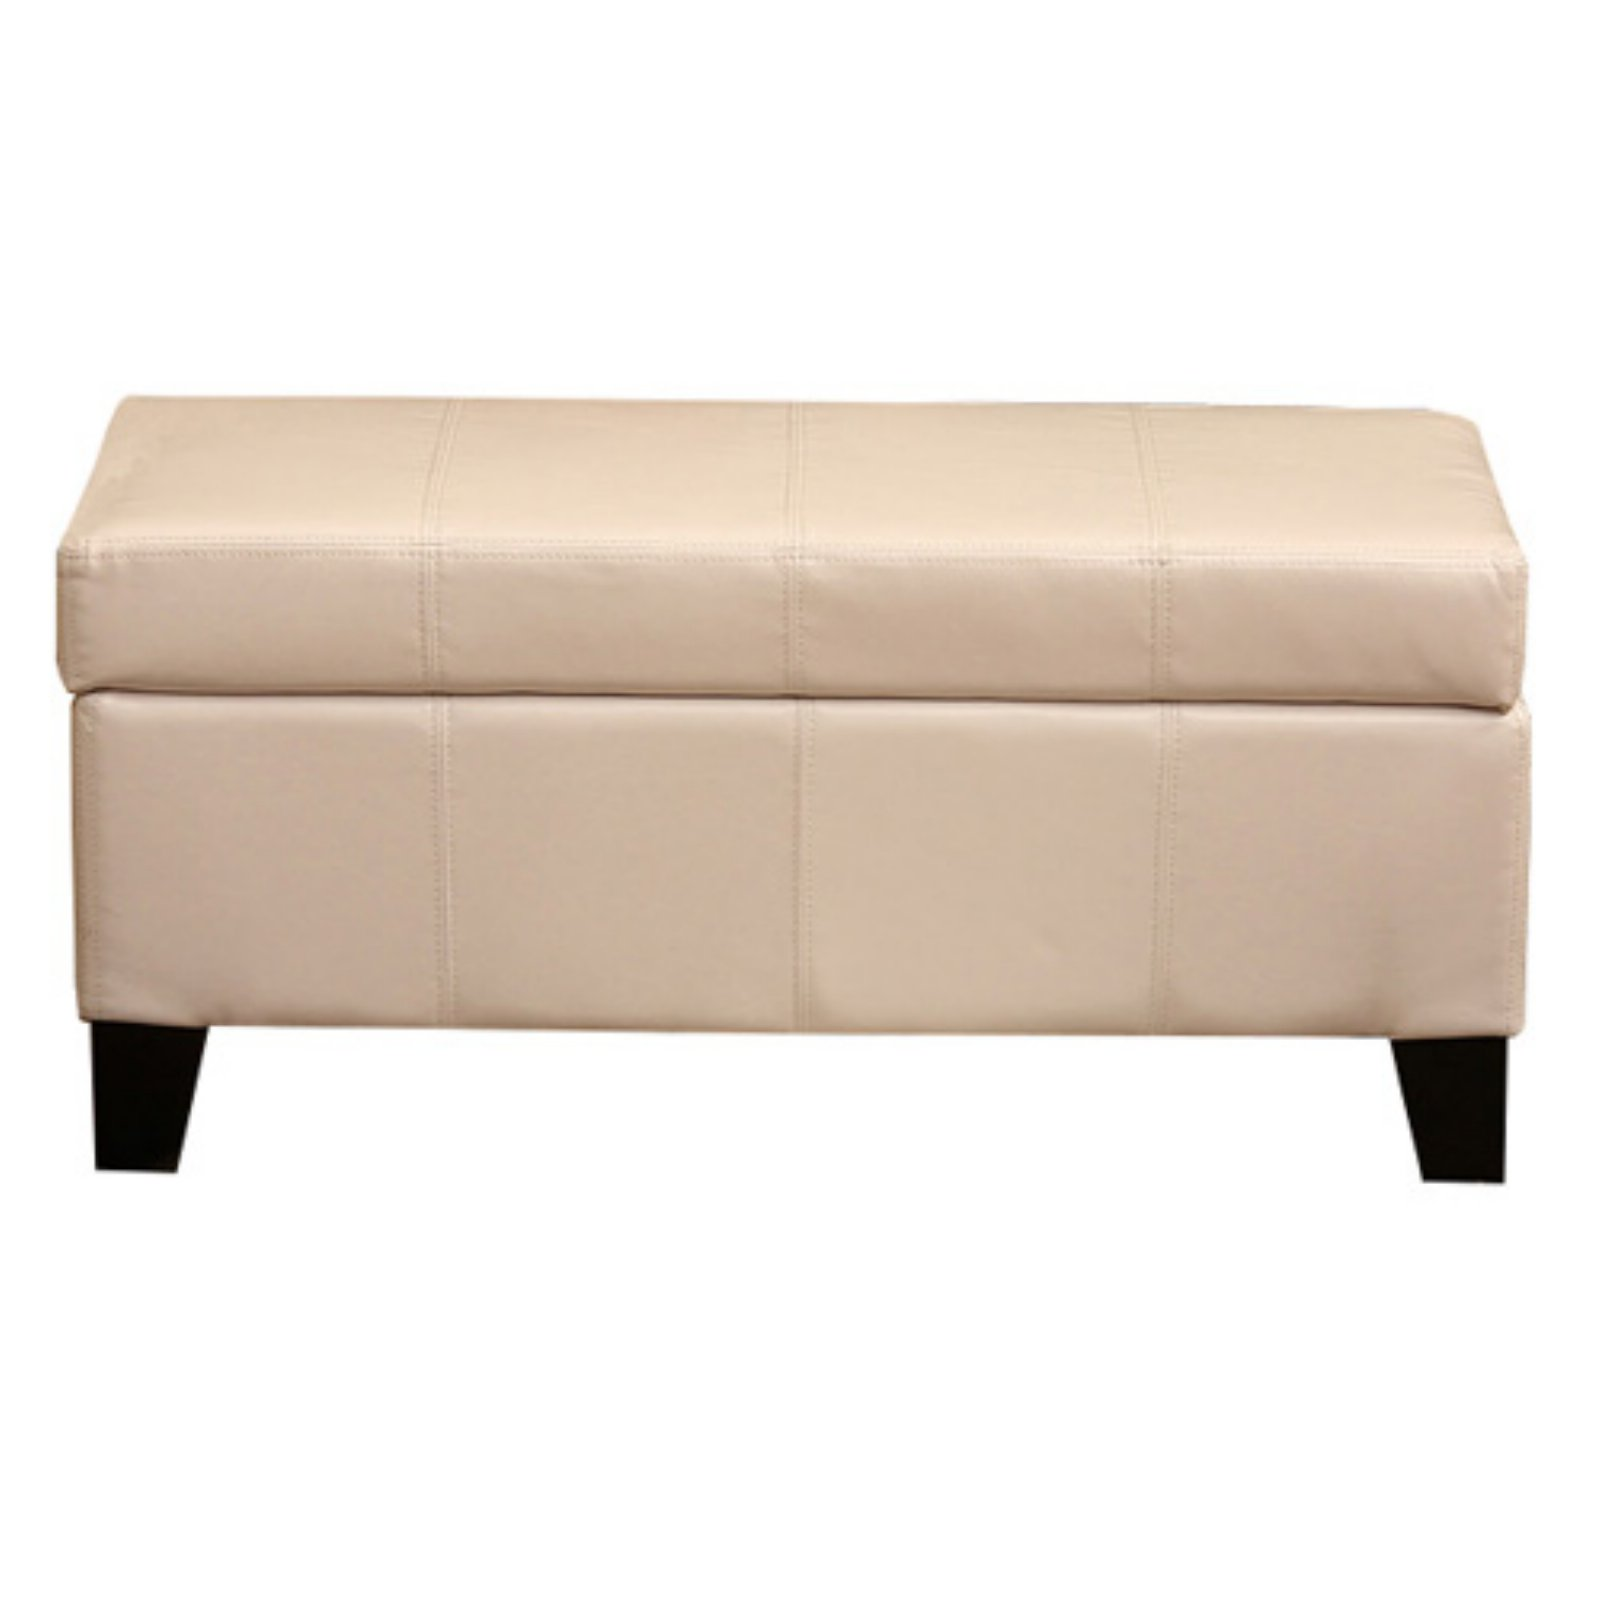 Warehouse Of Tiffany Ariel White Leather Storage Bench   Walmart.com